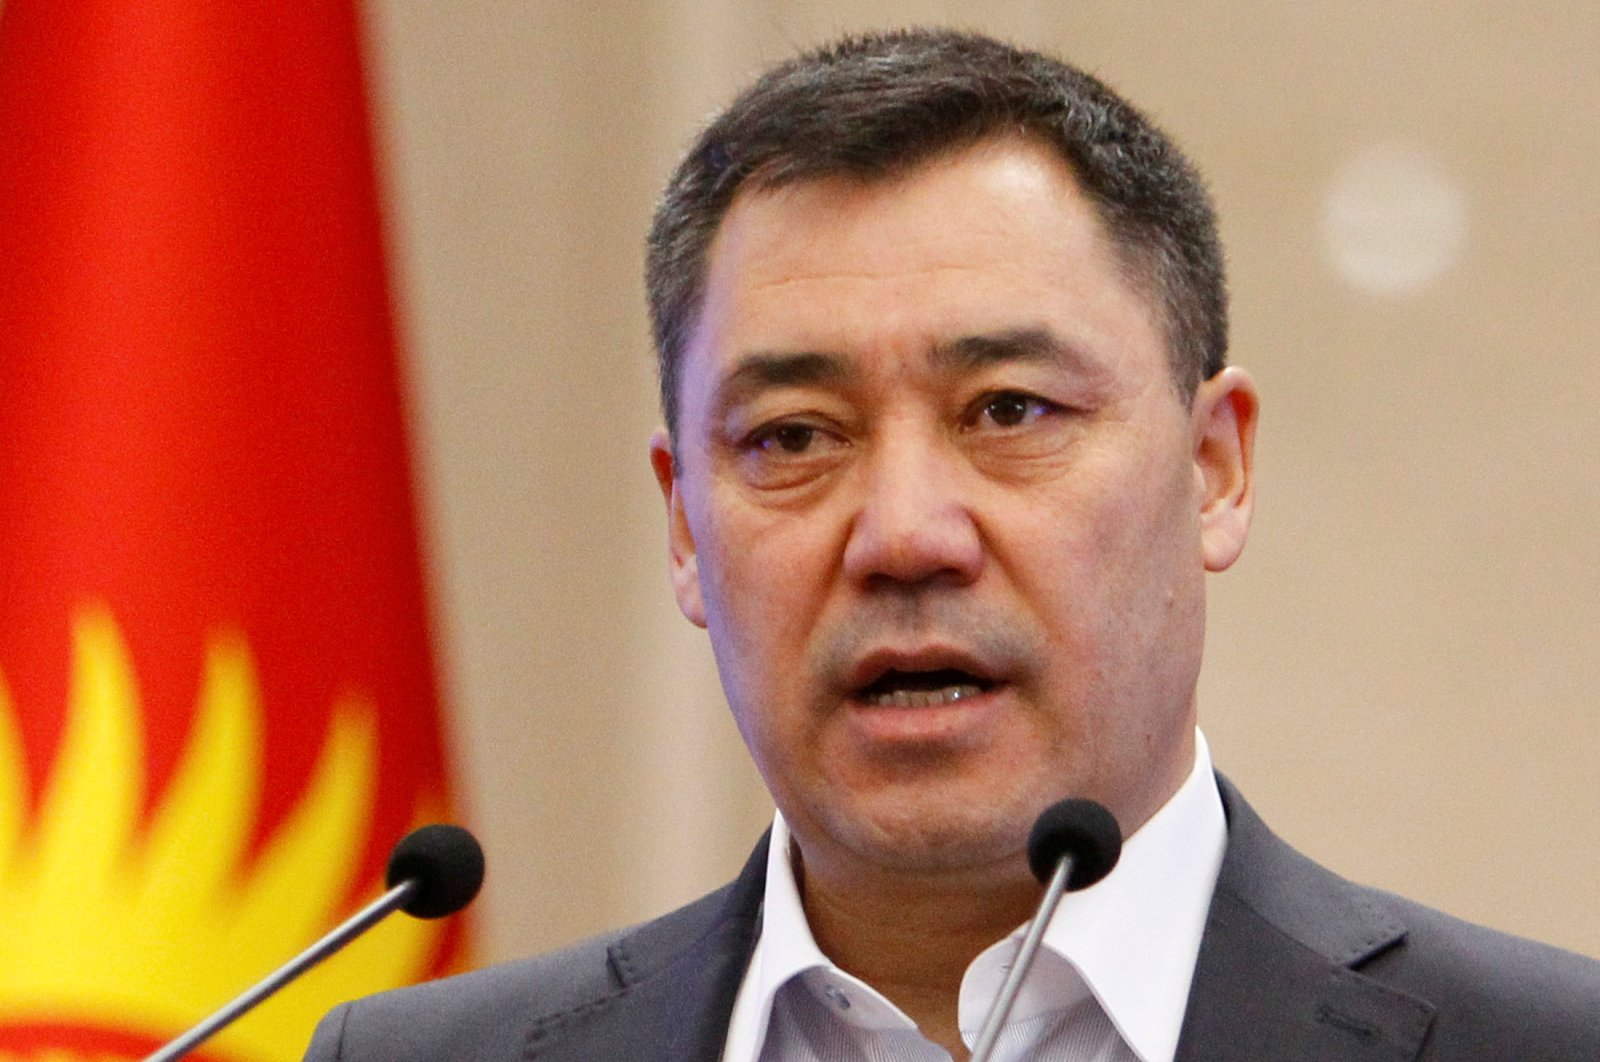 Kyrgyzstan's Prime Minister Sadyr Japarov delivers a speech during an extraordinary session of parliament in Bishkek, Kyrgyzstan, Oct. 16, 2020. (Reuters Photo)